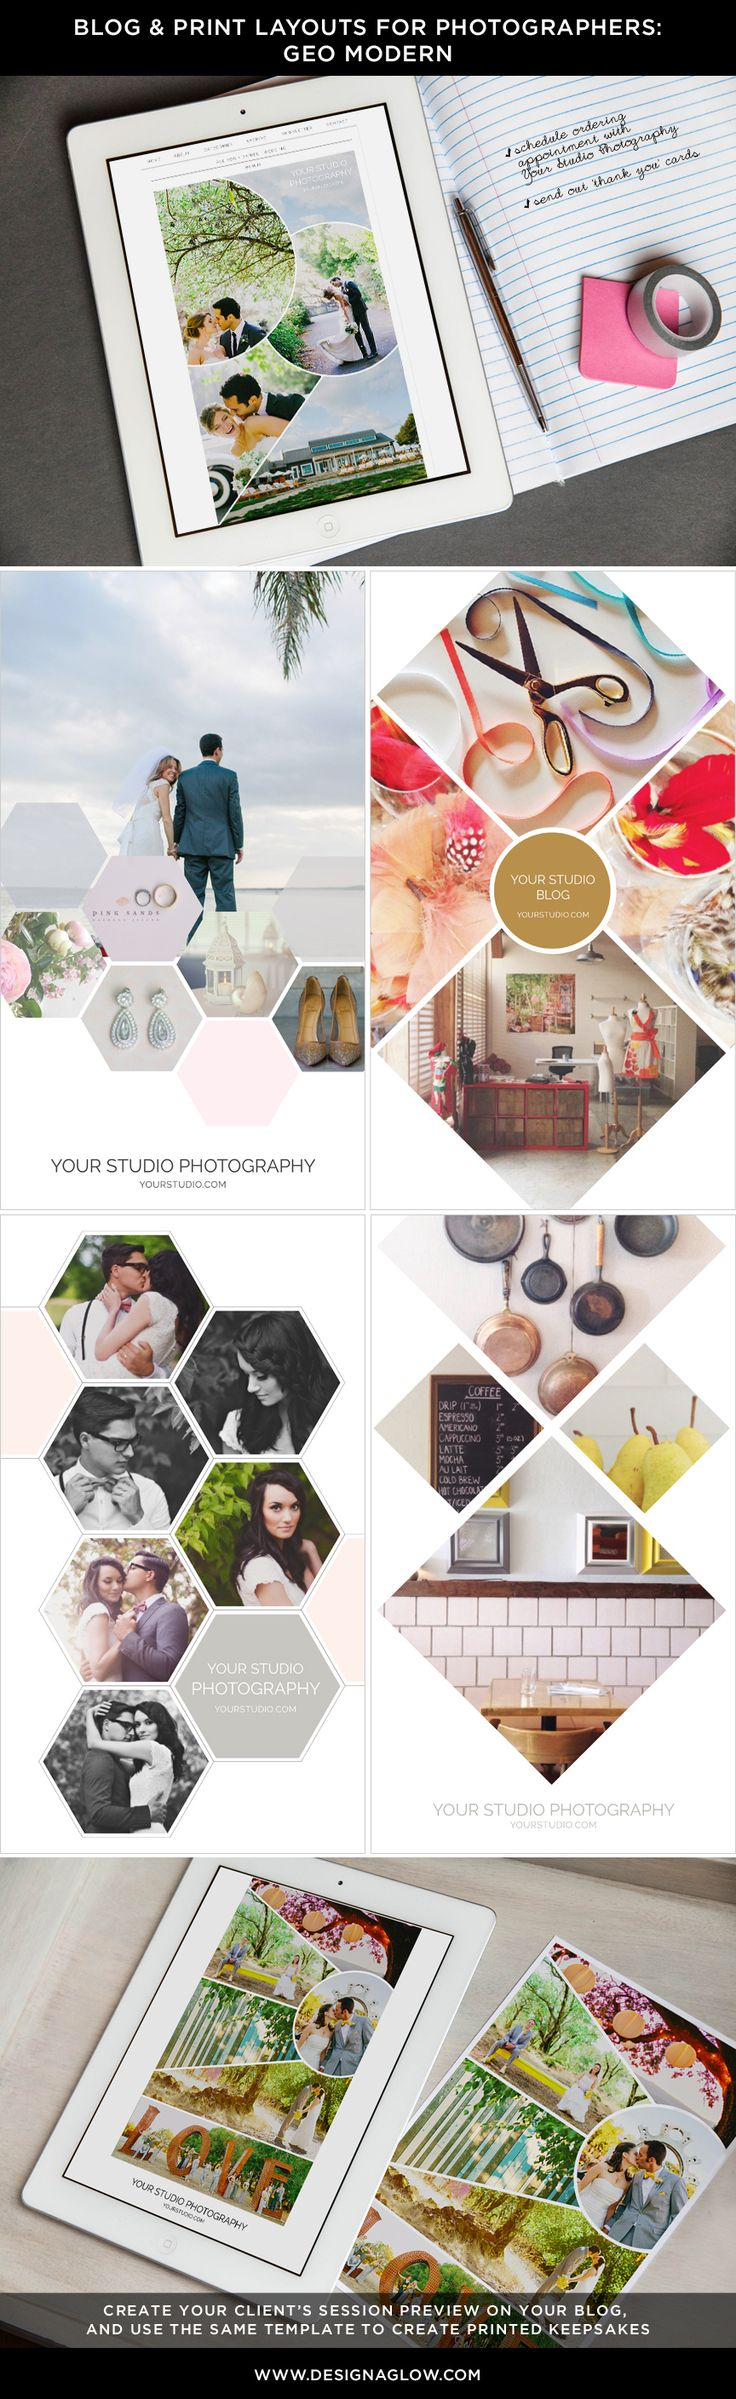 stylishly transform marketing materials prints and canvases with our hot new geo modern blog - Yearbook Design Ideas